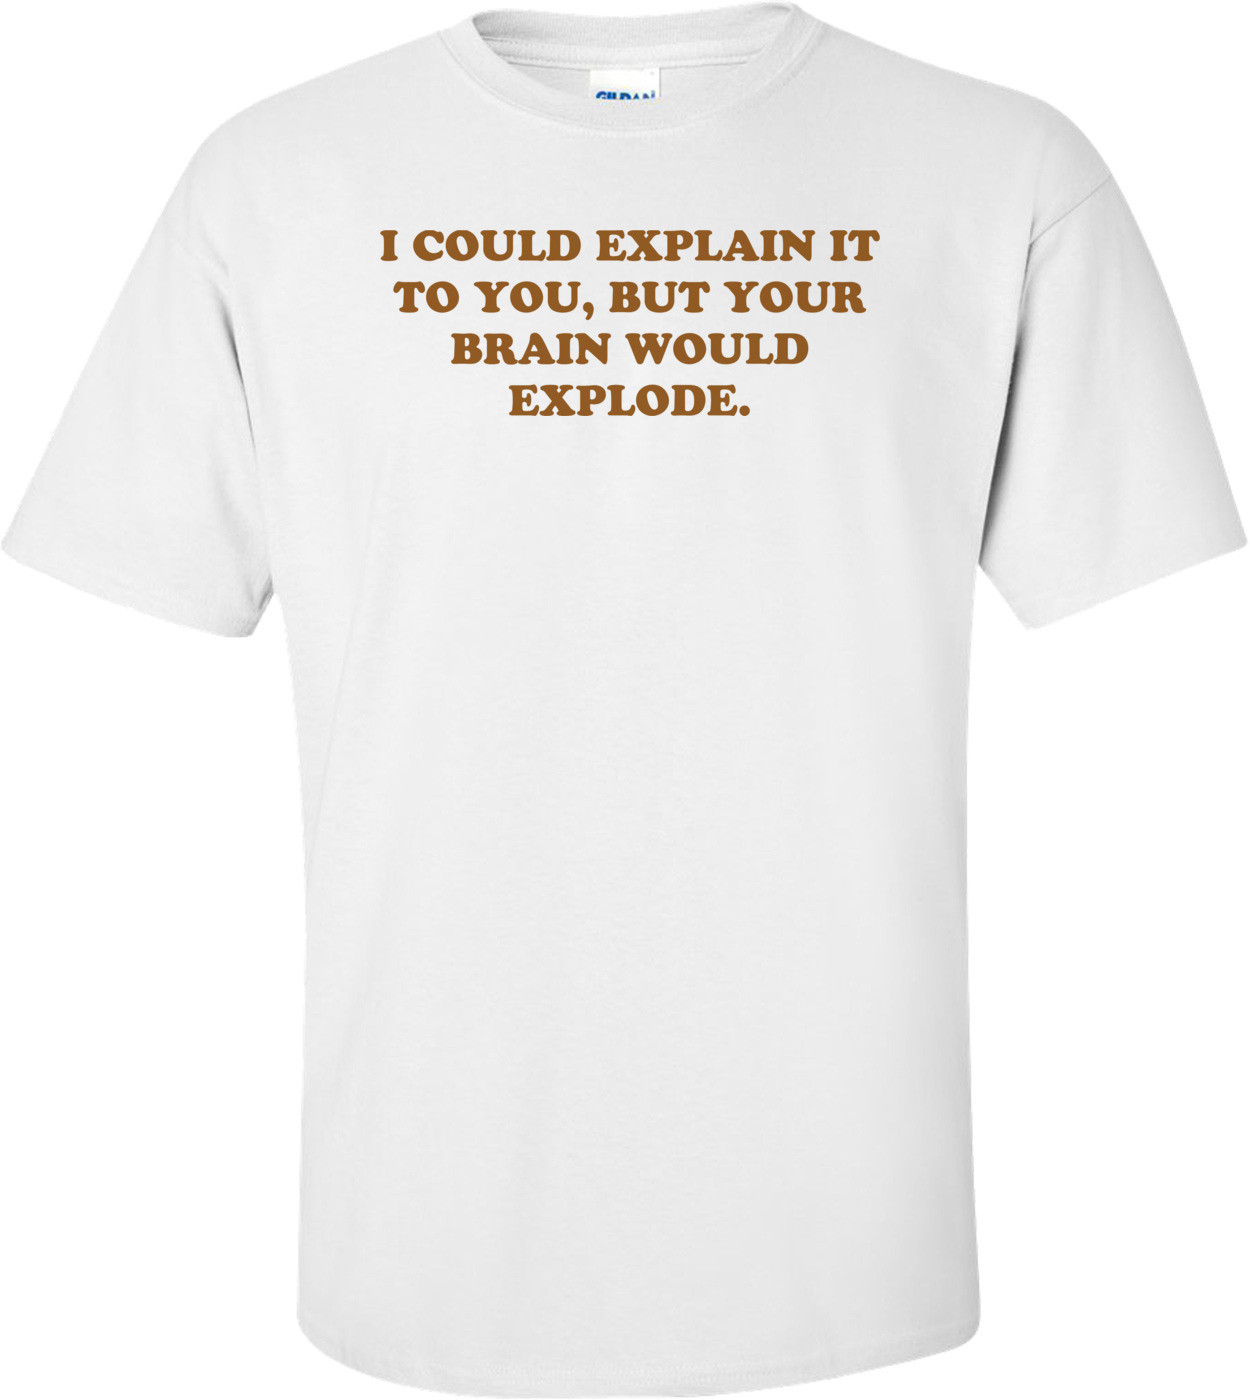 I COULD EXPLAIN IT TO YOU, BUT YOUR BRAIN WOULD EXPLODE. Shirt